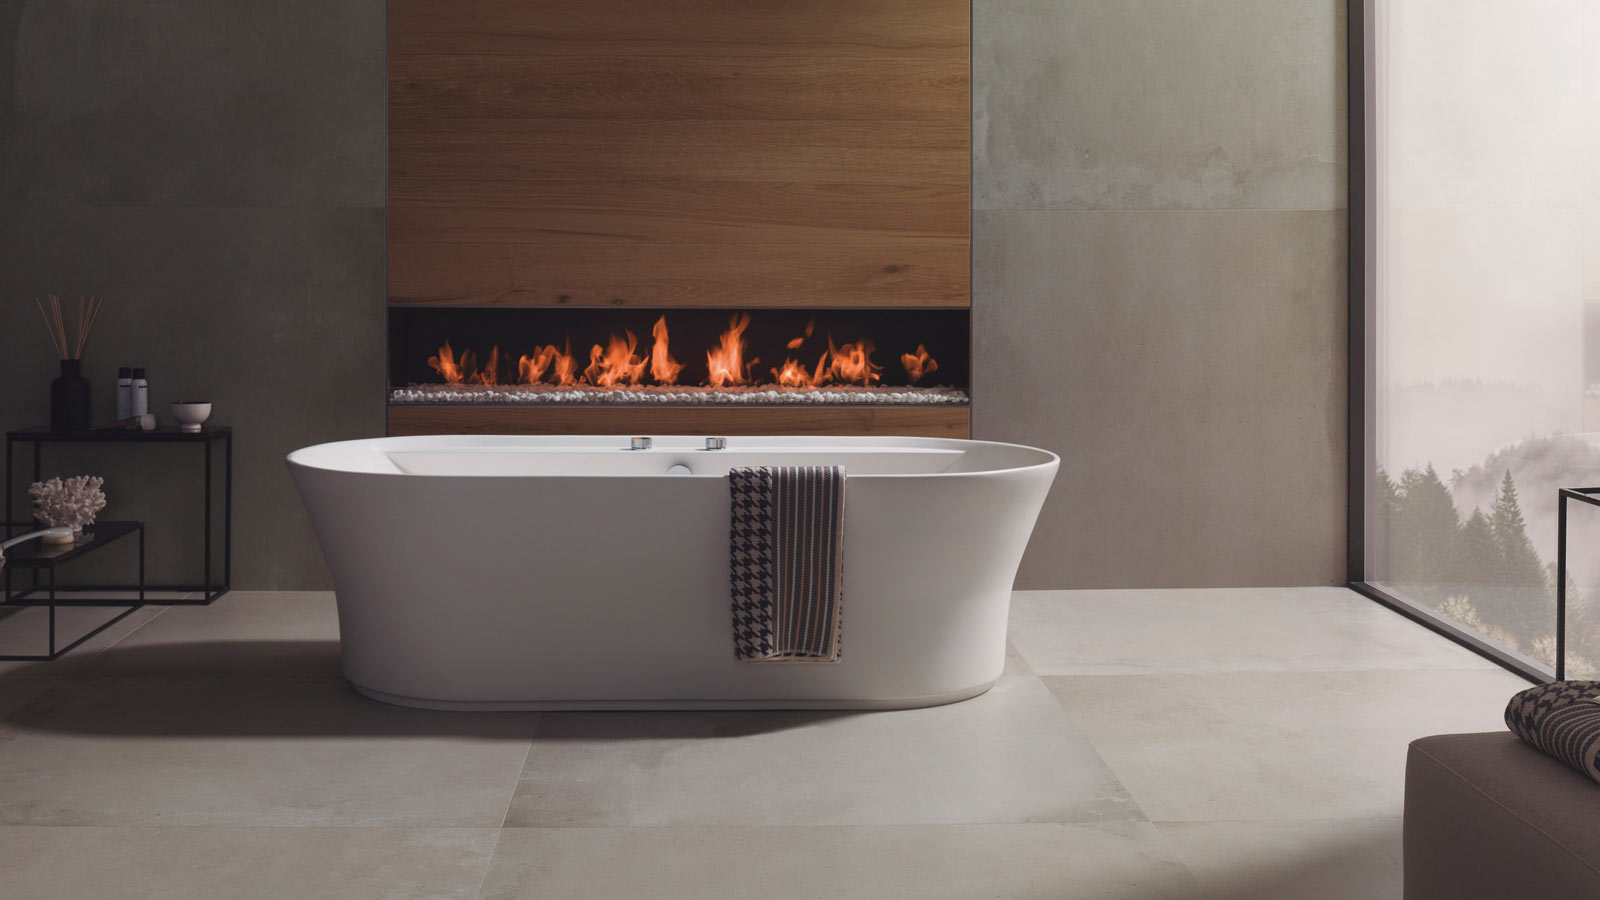 These fireplaces have the quintessential Porcelanosa style